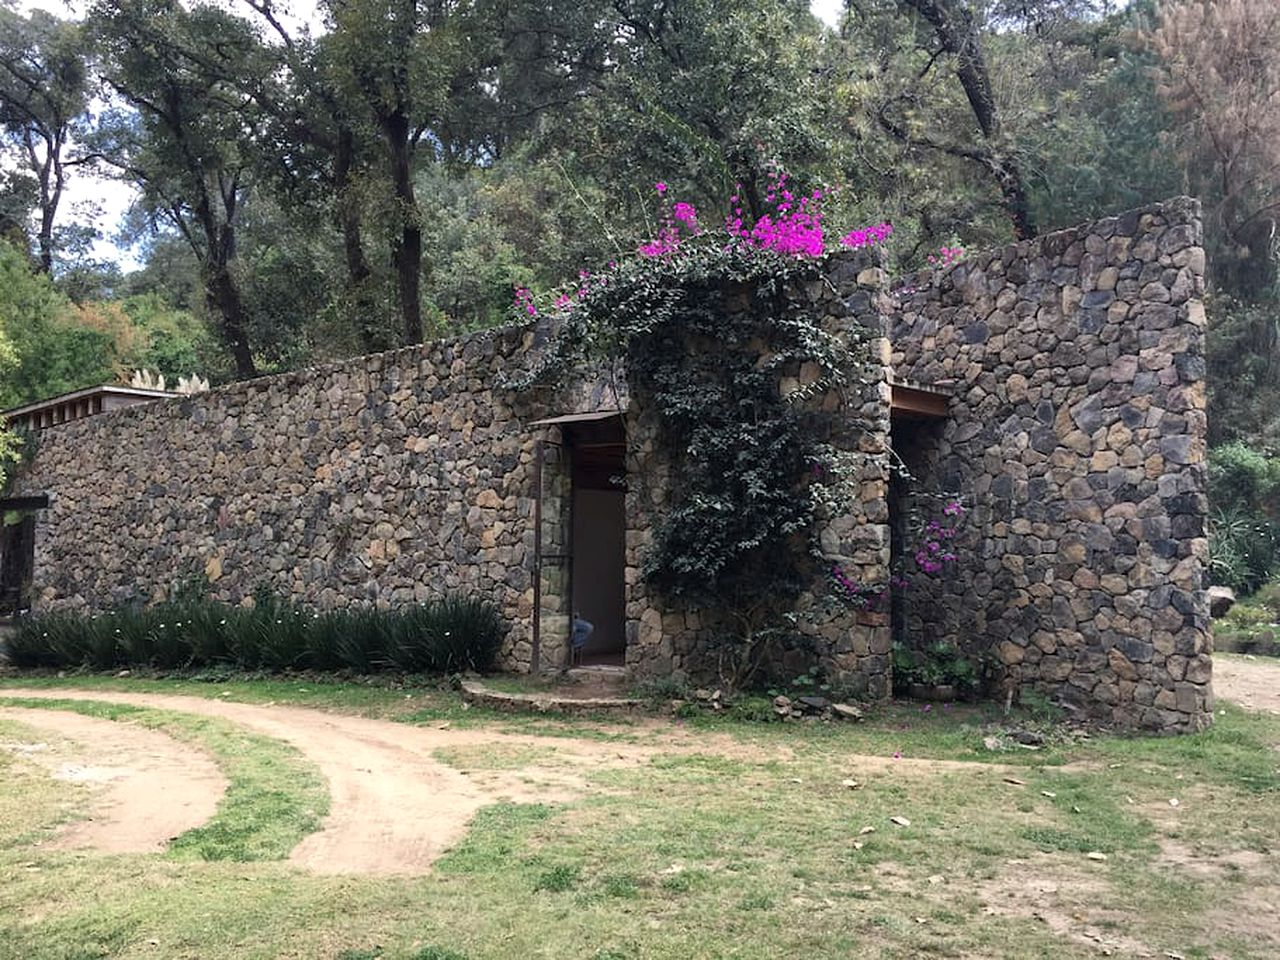 Cottages (Valle de Bravo, Michoacán, Mexico)